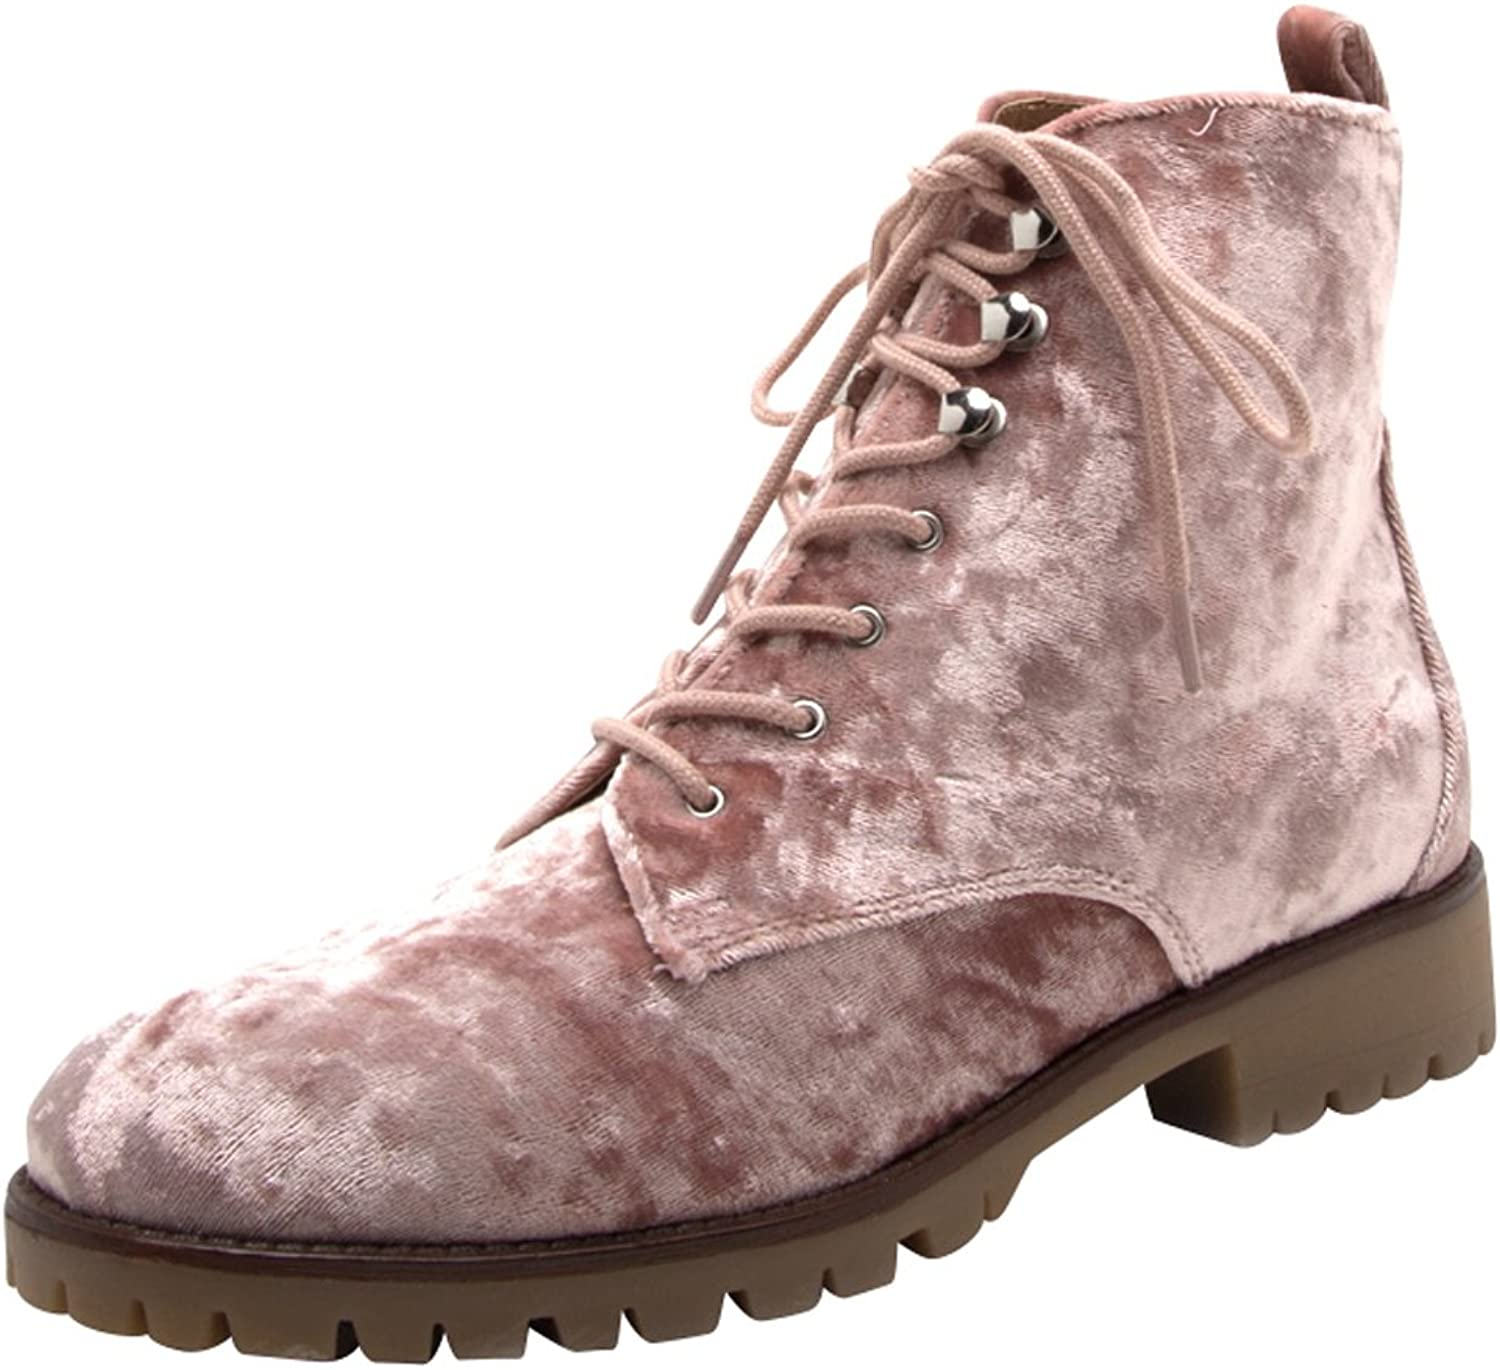 Cambridge Select Women's Closed Round Toe Lace-Up Chunky Lug Sole Combat Boot